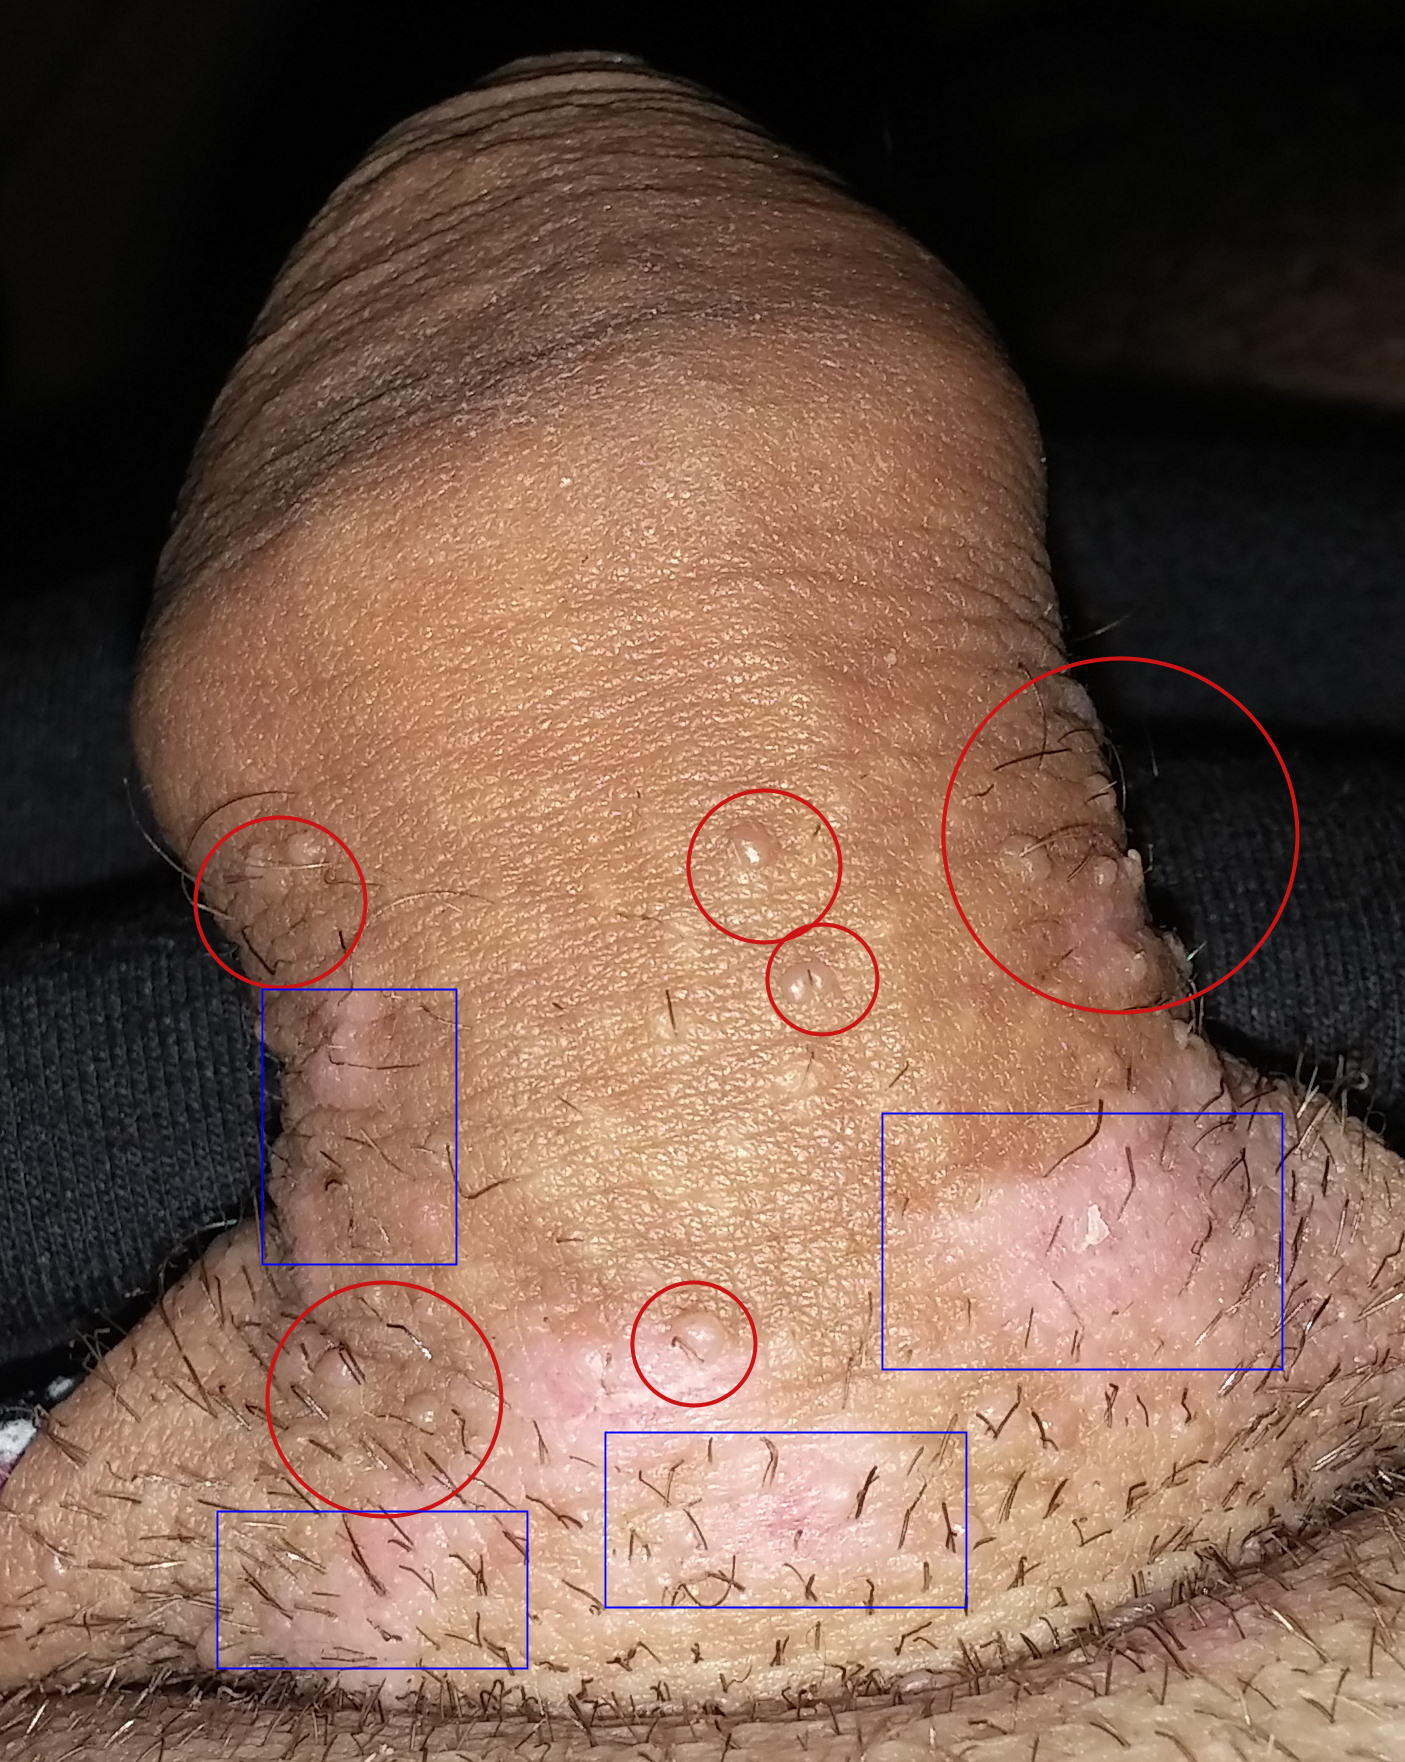 hpv condylome transmission urothelial papilloma with atypia